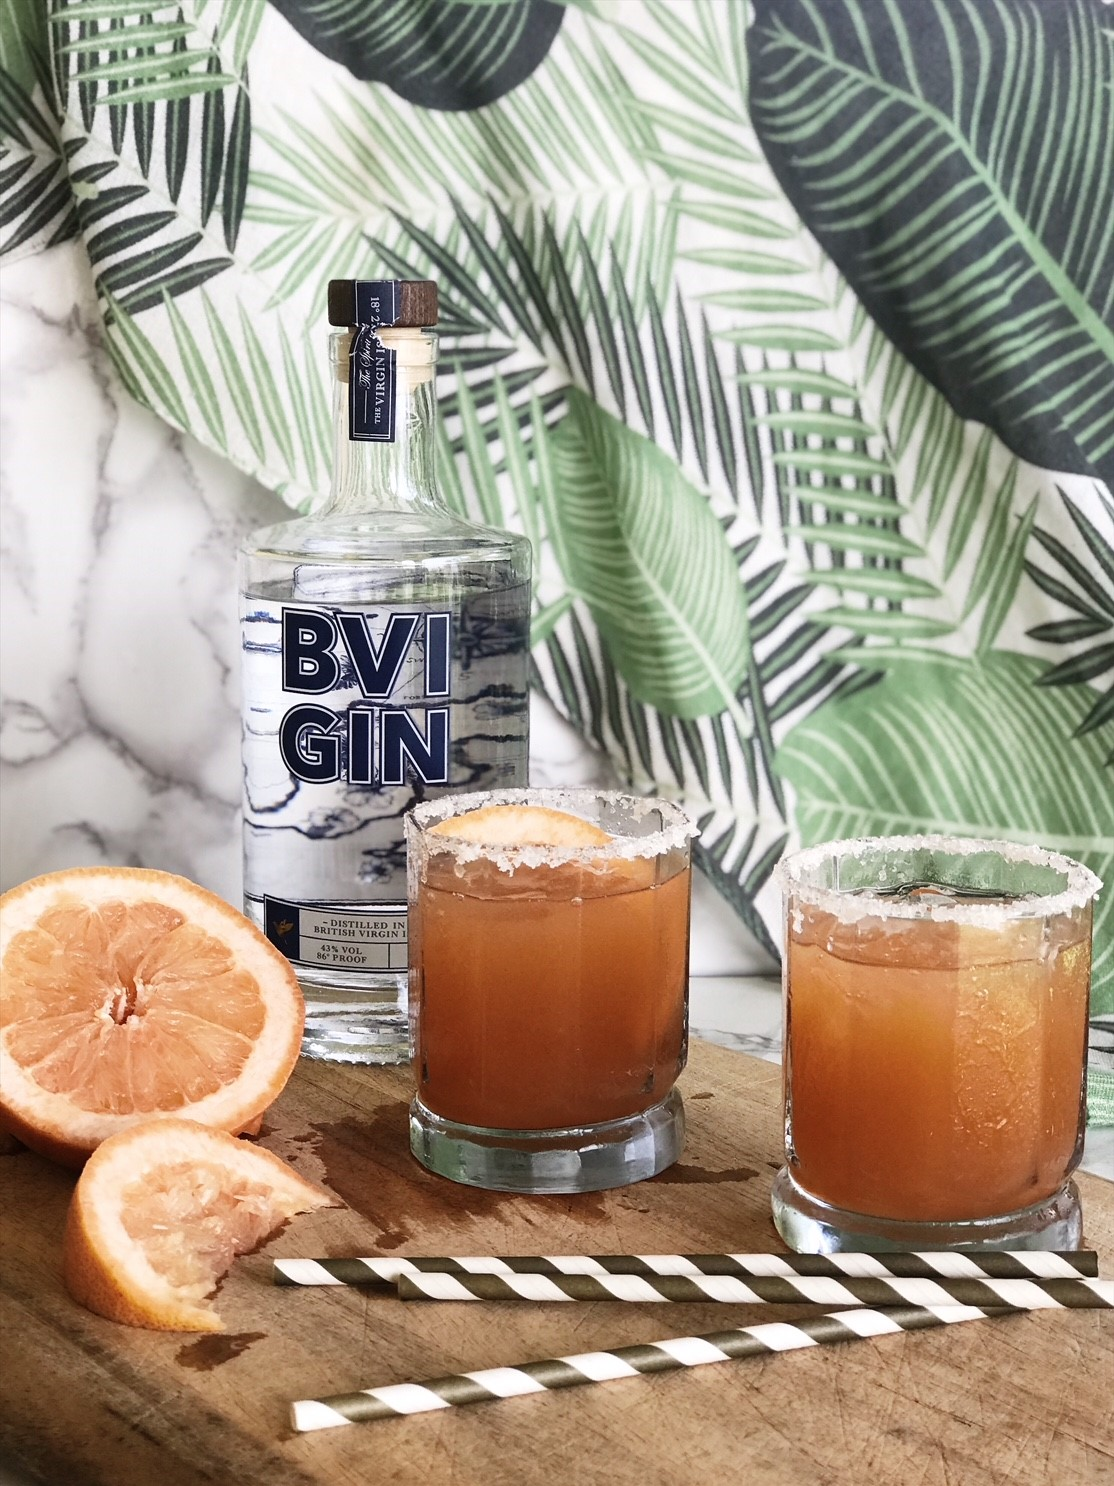 Easy cocktail recipes with BVI Gin - Salty Dog, Gin and Grapefruit Juice